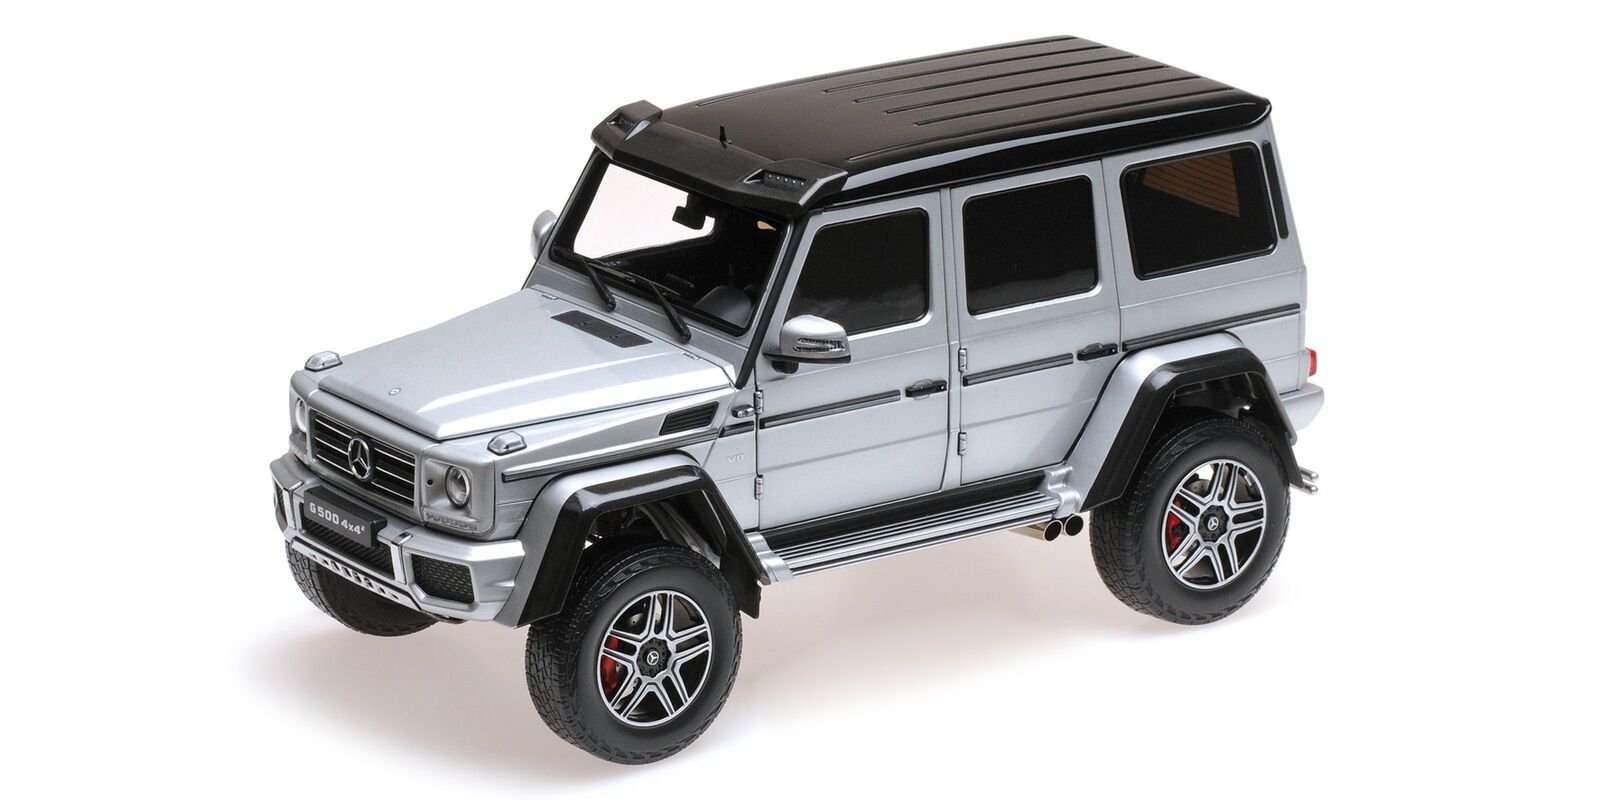 Almost Real Mercedes-Benz g500 4x4 ARGENTO 1:18